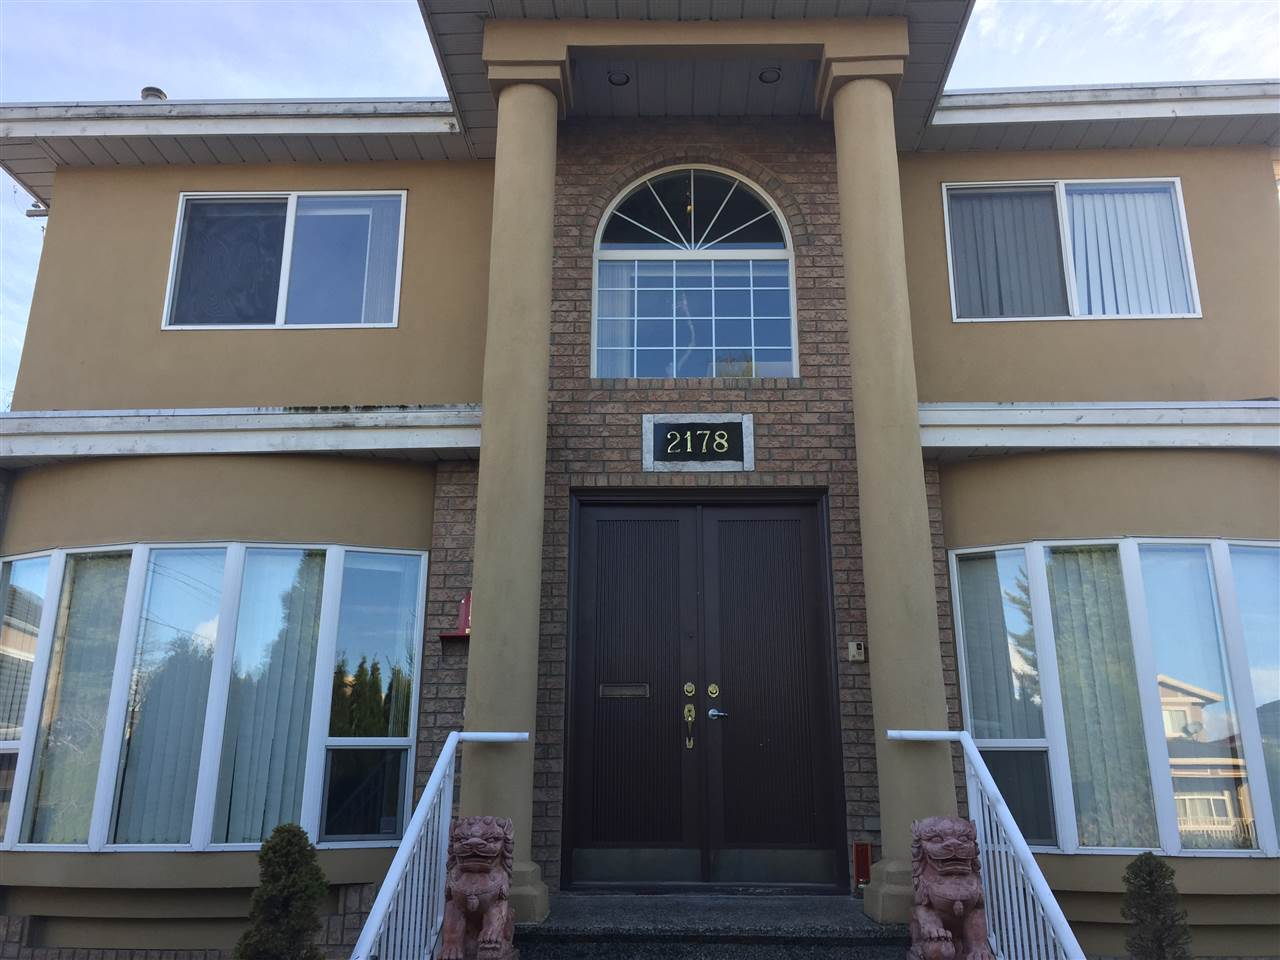 Main Photo: 2178 E 49TH Avenue in Vancouver: Killarney VE House for sale (Vancouver East)  : MLS®# R2219096